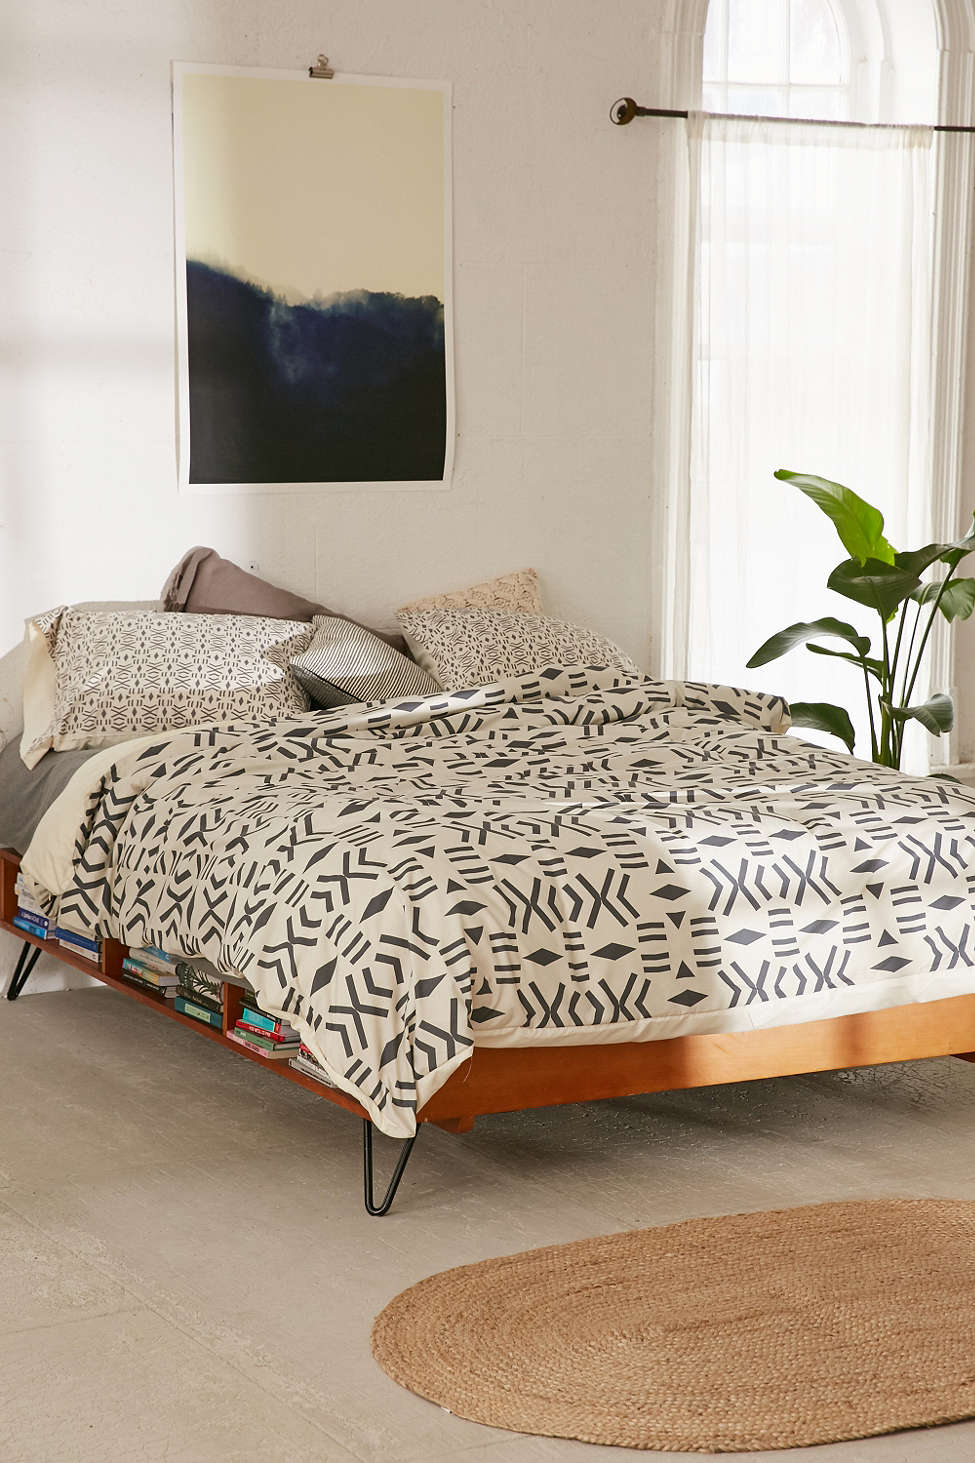 Black and white duvet cover from Urban Outfitters